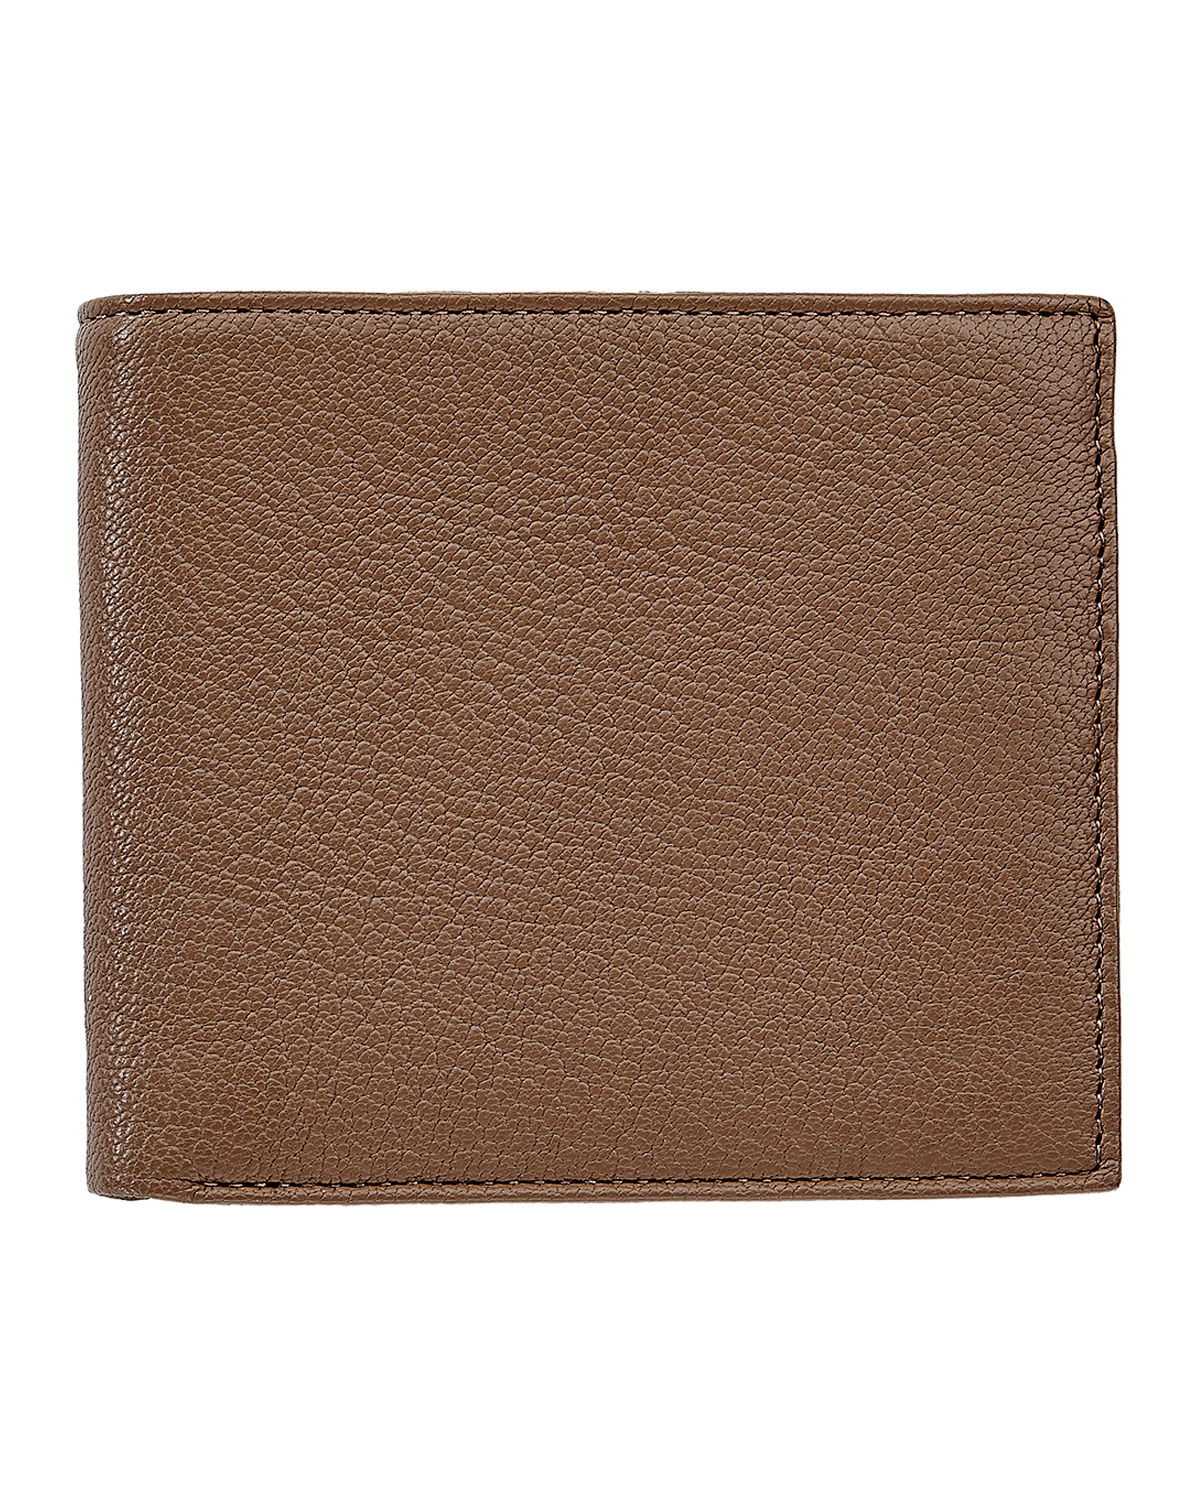 Men's Two-Tone Goat Leather Wallet